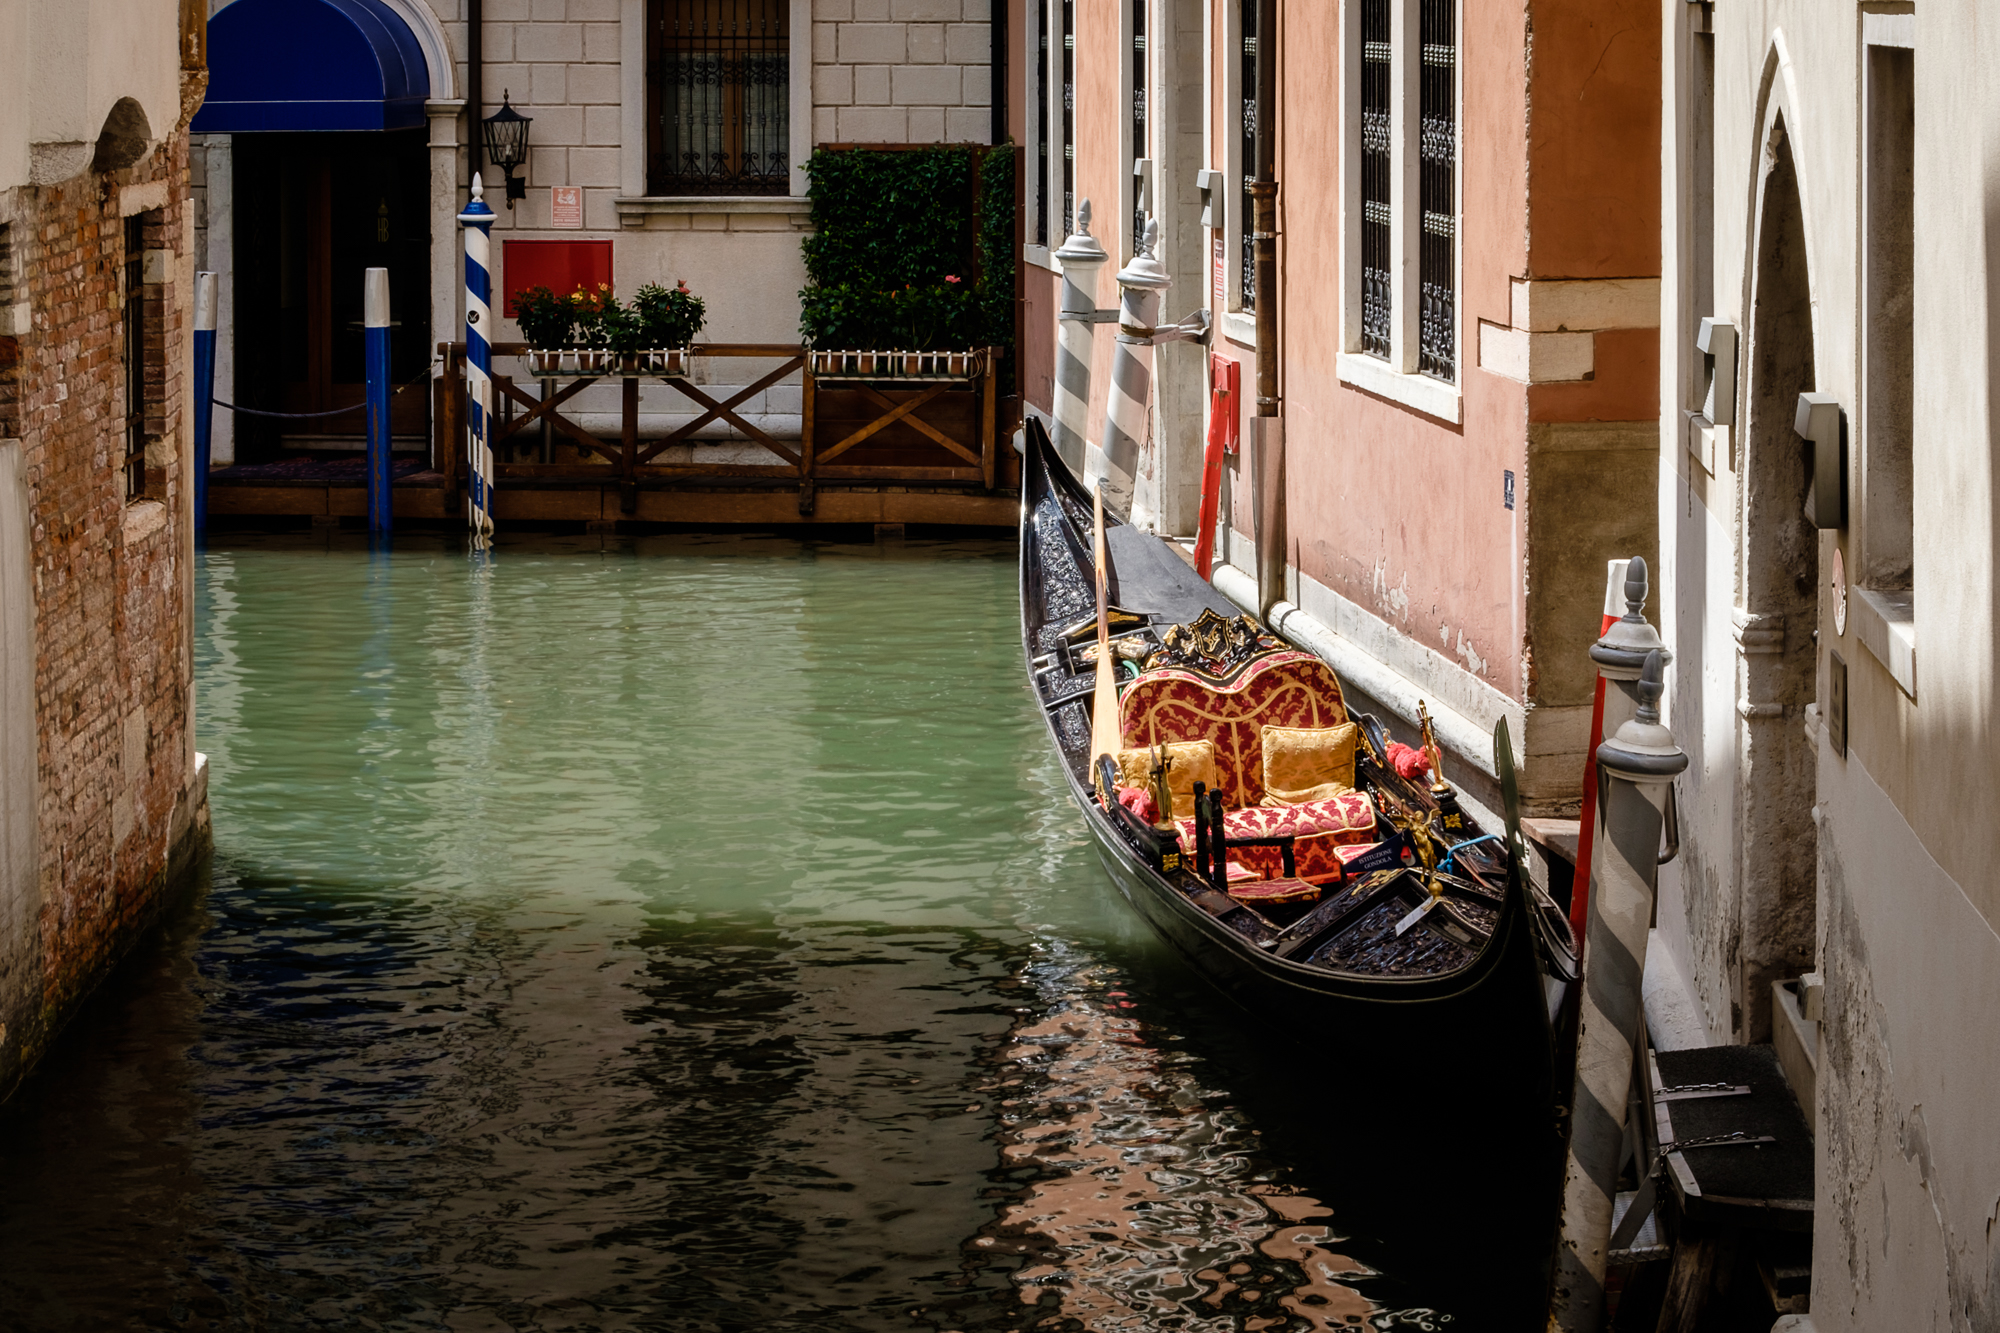 A photo of a moored gondola on the Venetian canal taken by Trevor Sherwin